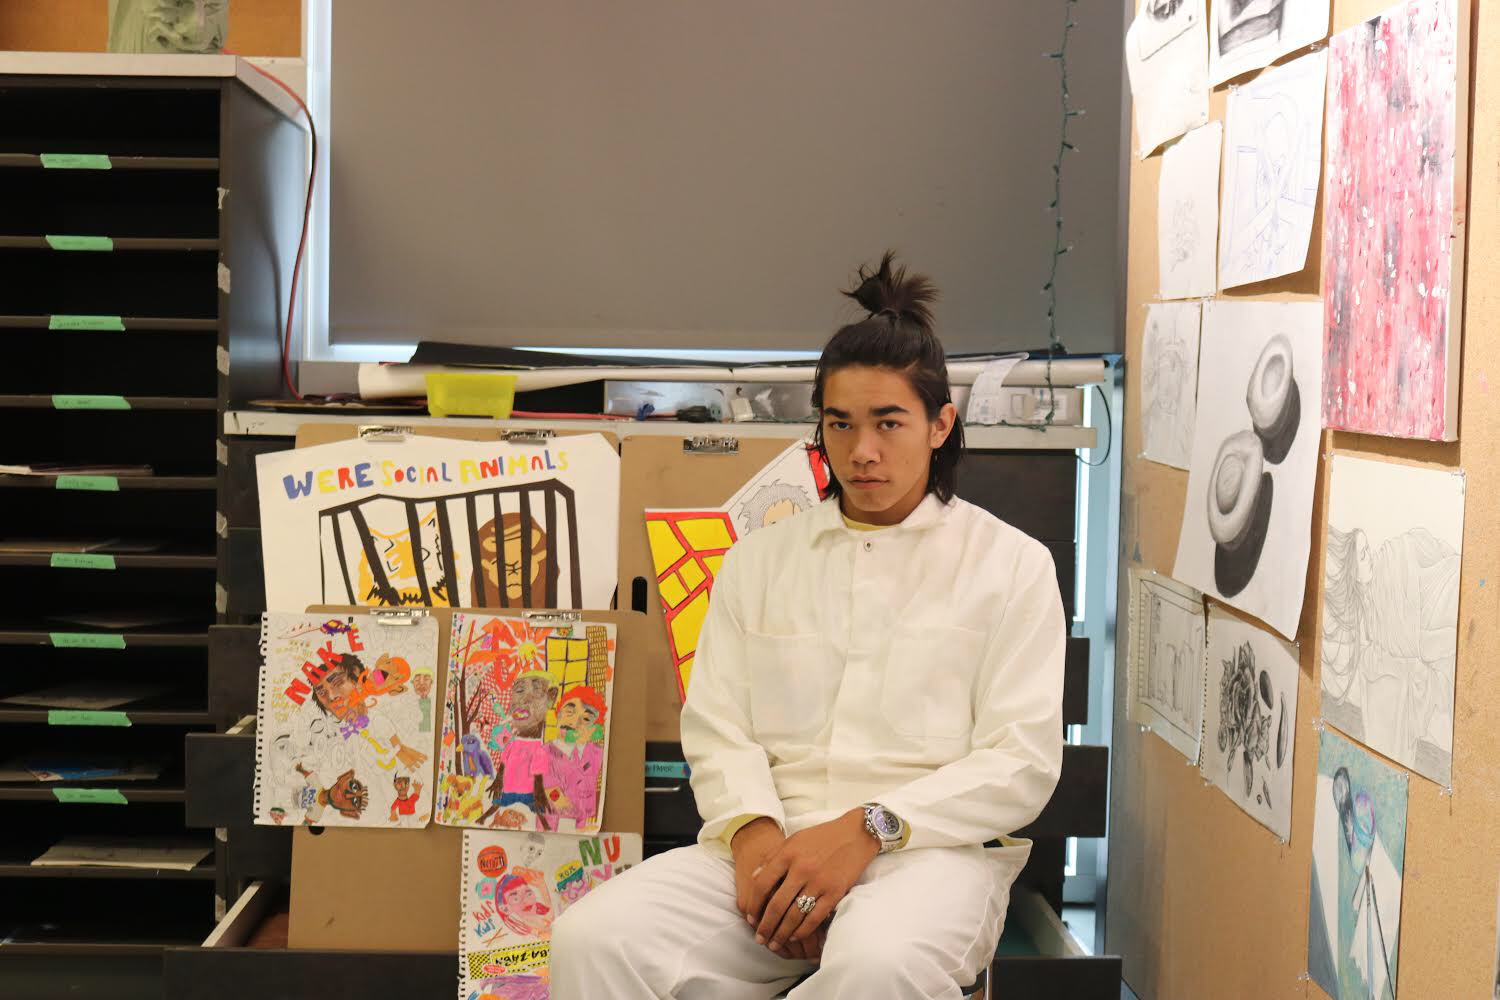 Senior Nick Cook wins Bay Area art competition